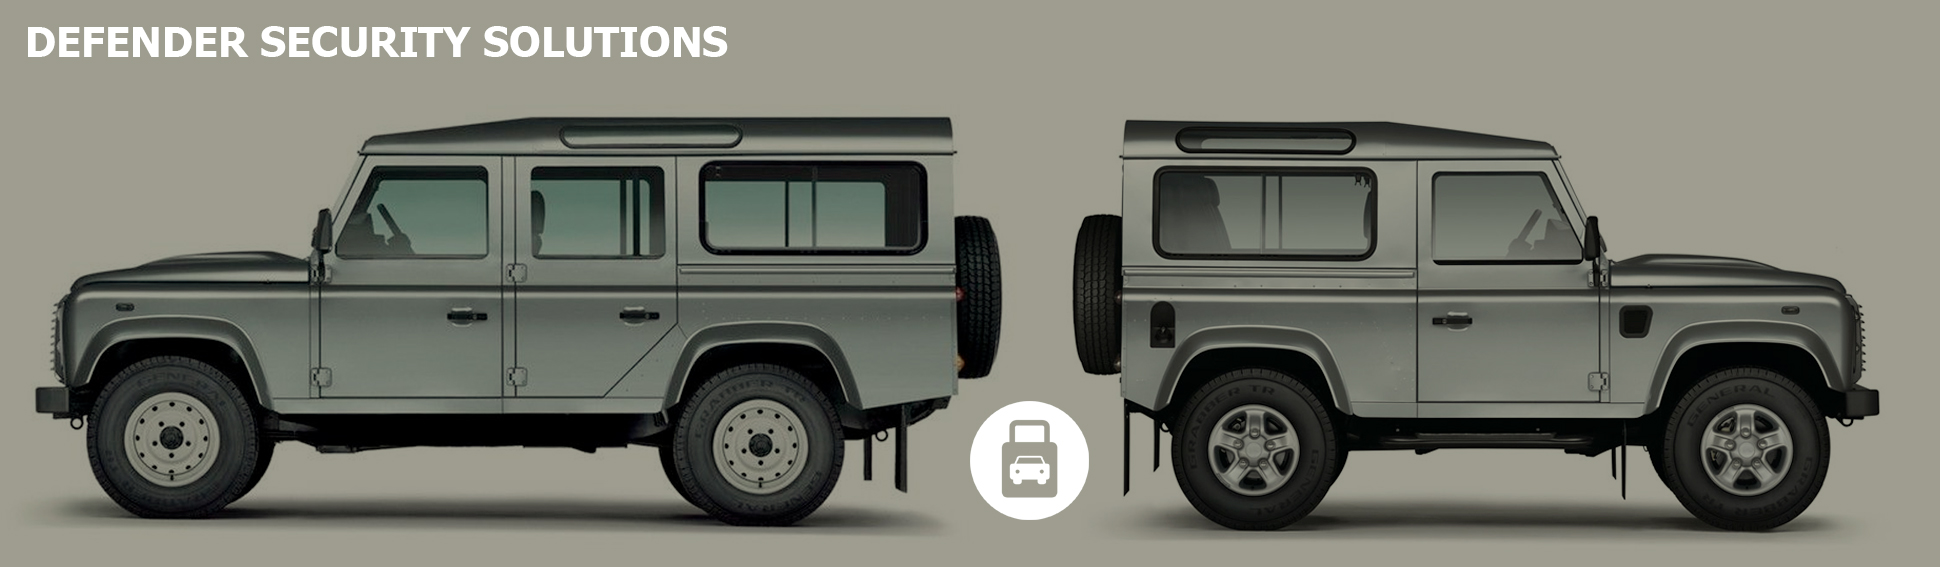 Land Rover Defender 110 - 90 Security Solutions - TTW Installations